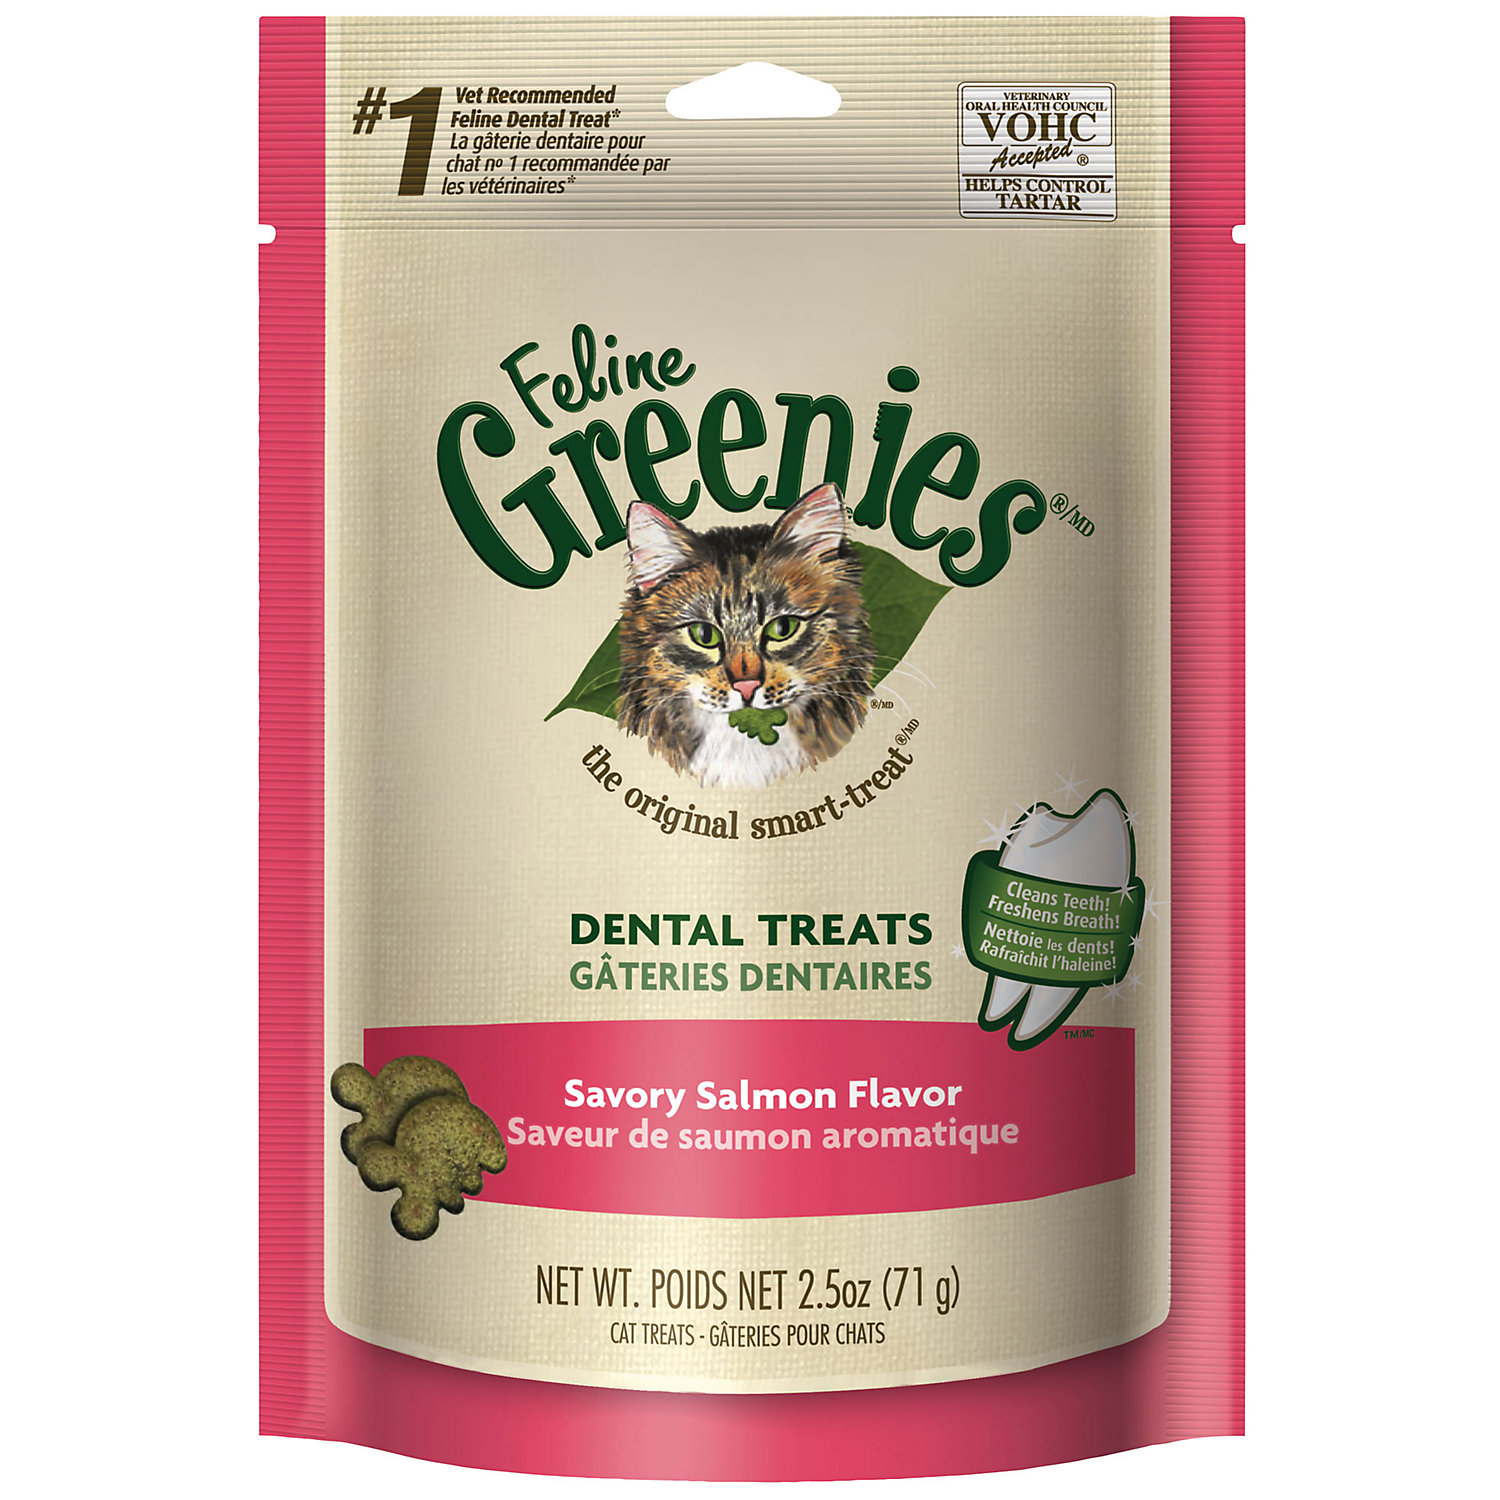 Feline Greenies Savory Salmon Flavor 2.5 Oz.